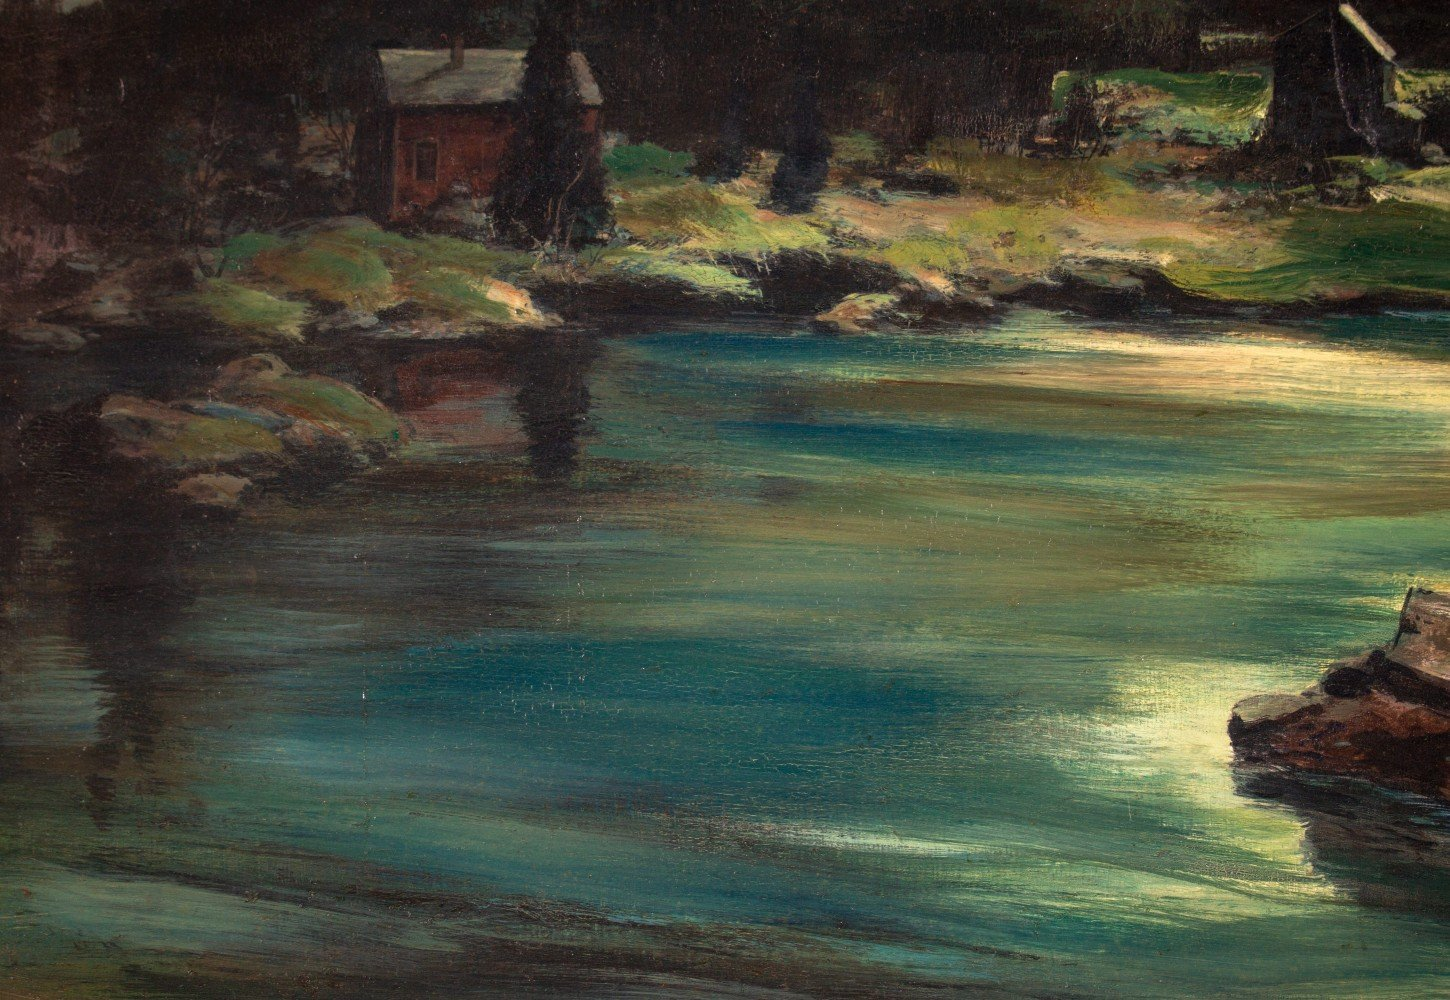 Landscape Oil on Masonite Painting: